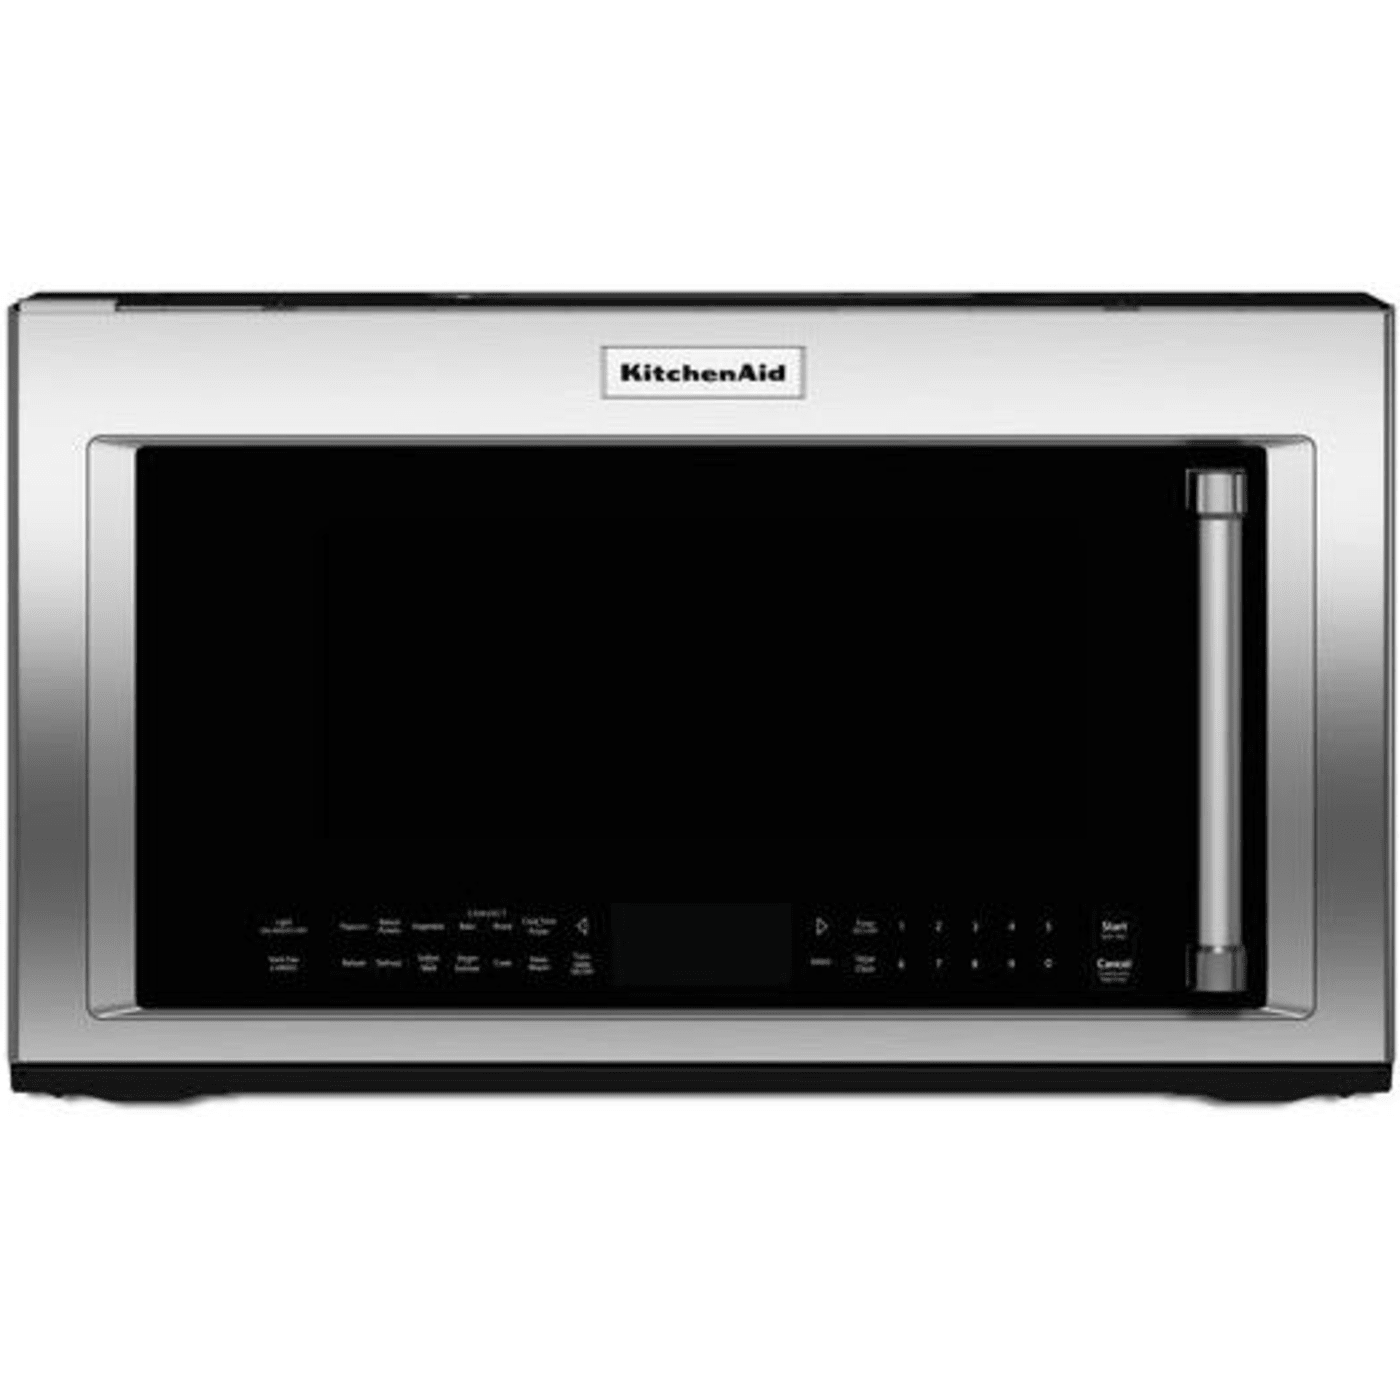 Kmhc319ess By Kitchenaid Over The Range Microwaves Goedekers